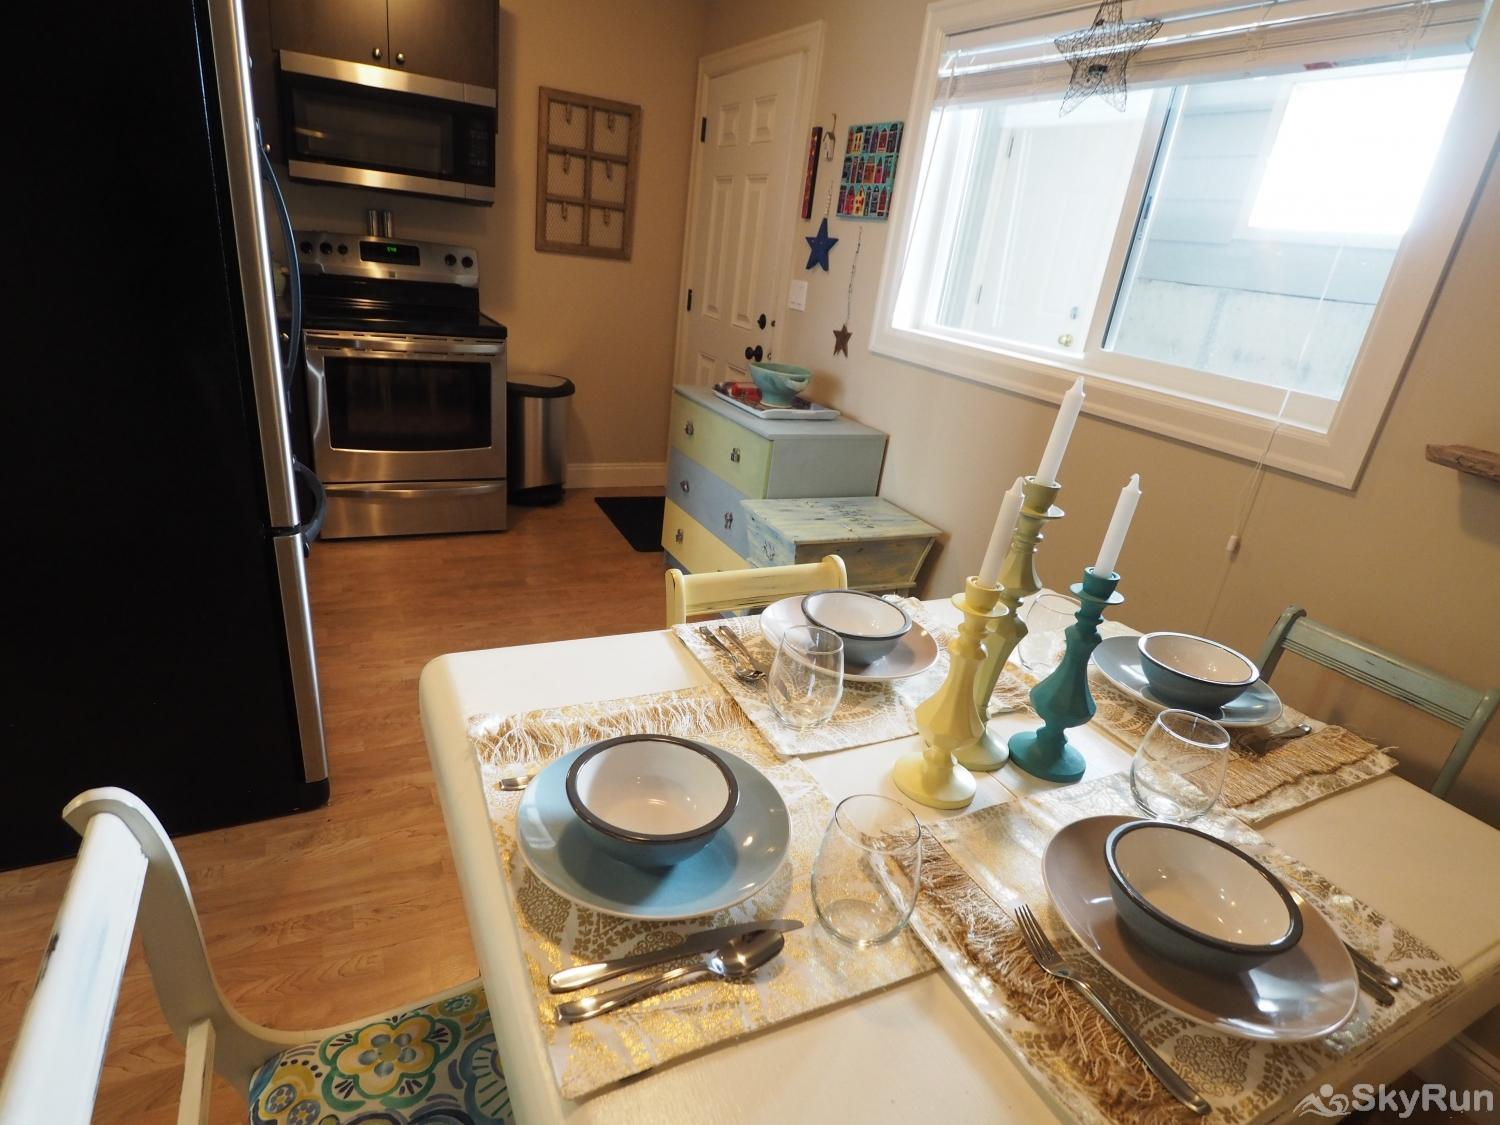 Old Summerland 1 bedroom suite Enjoy a quiet meal before heading out to sight see